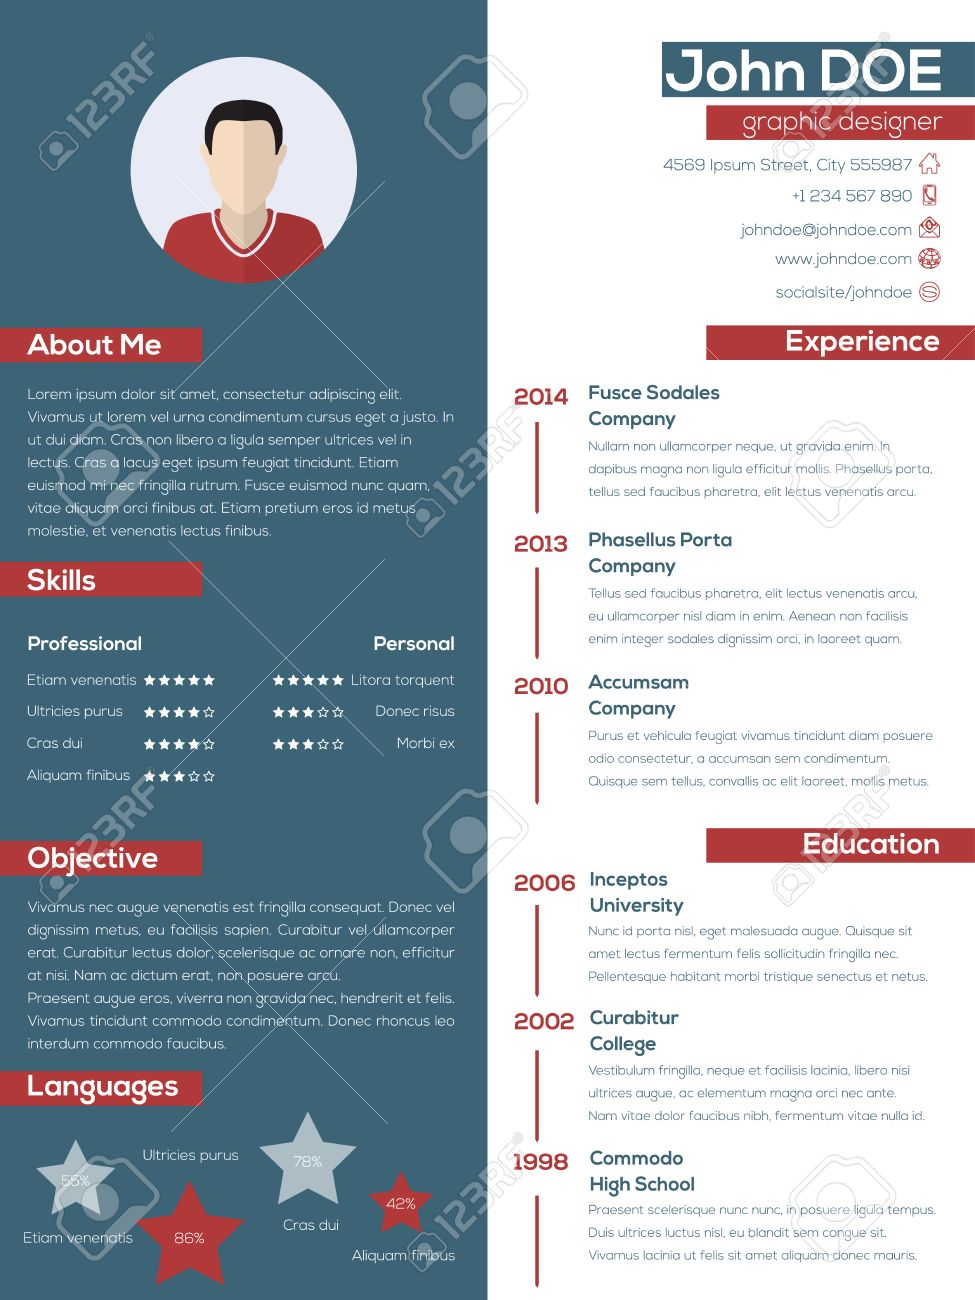 resume Modern Resume Design modern resume cv design with pastel colors and photo royalty free stock vector 38199615